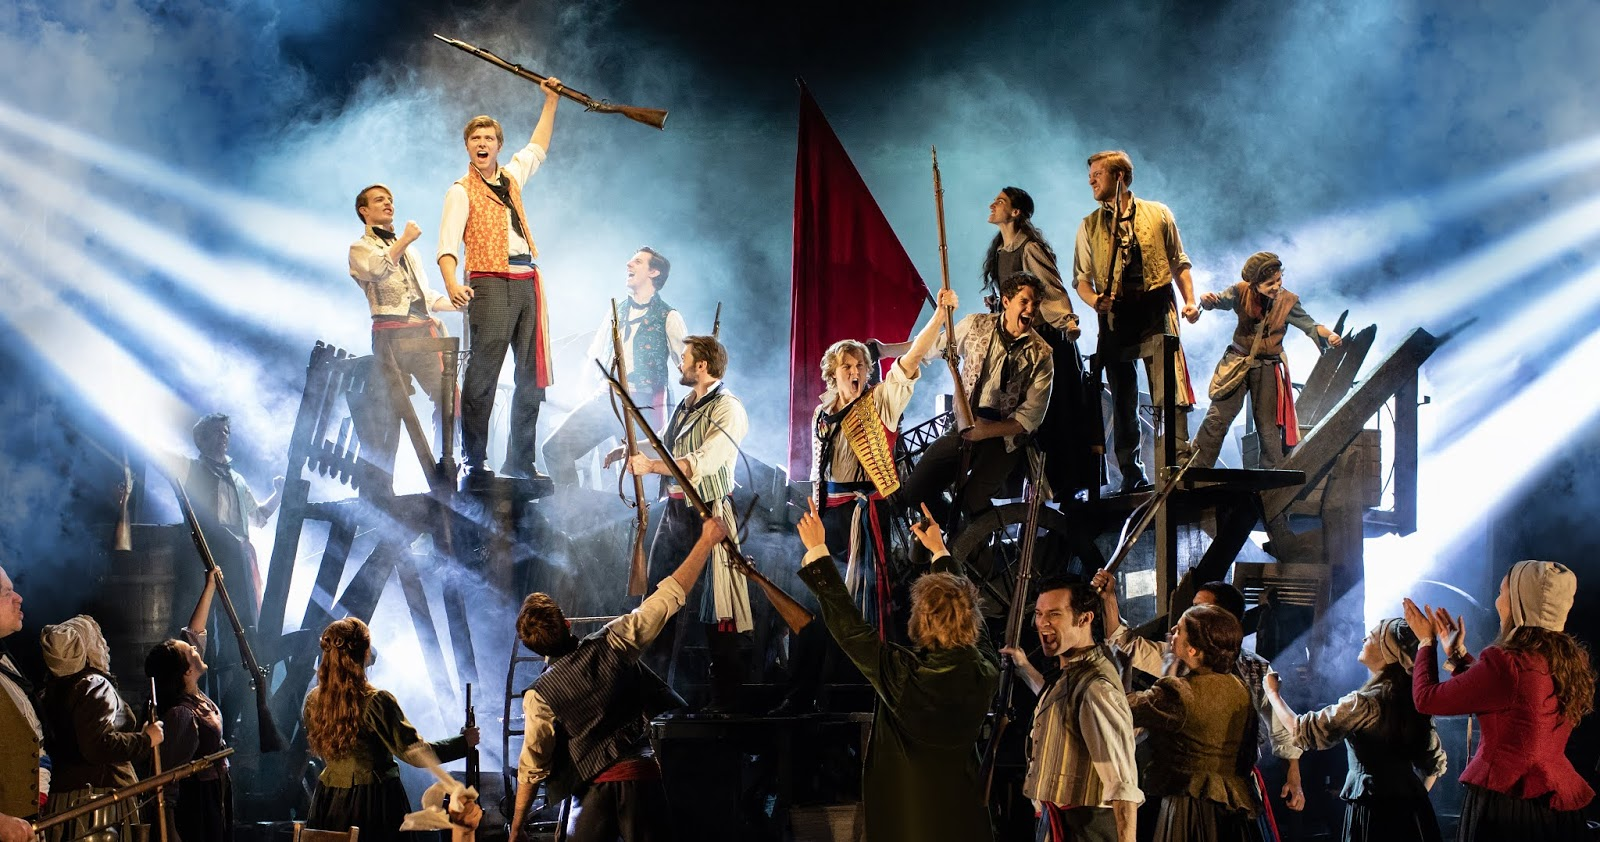 Les Misérables at Newcastle Theatre Royal